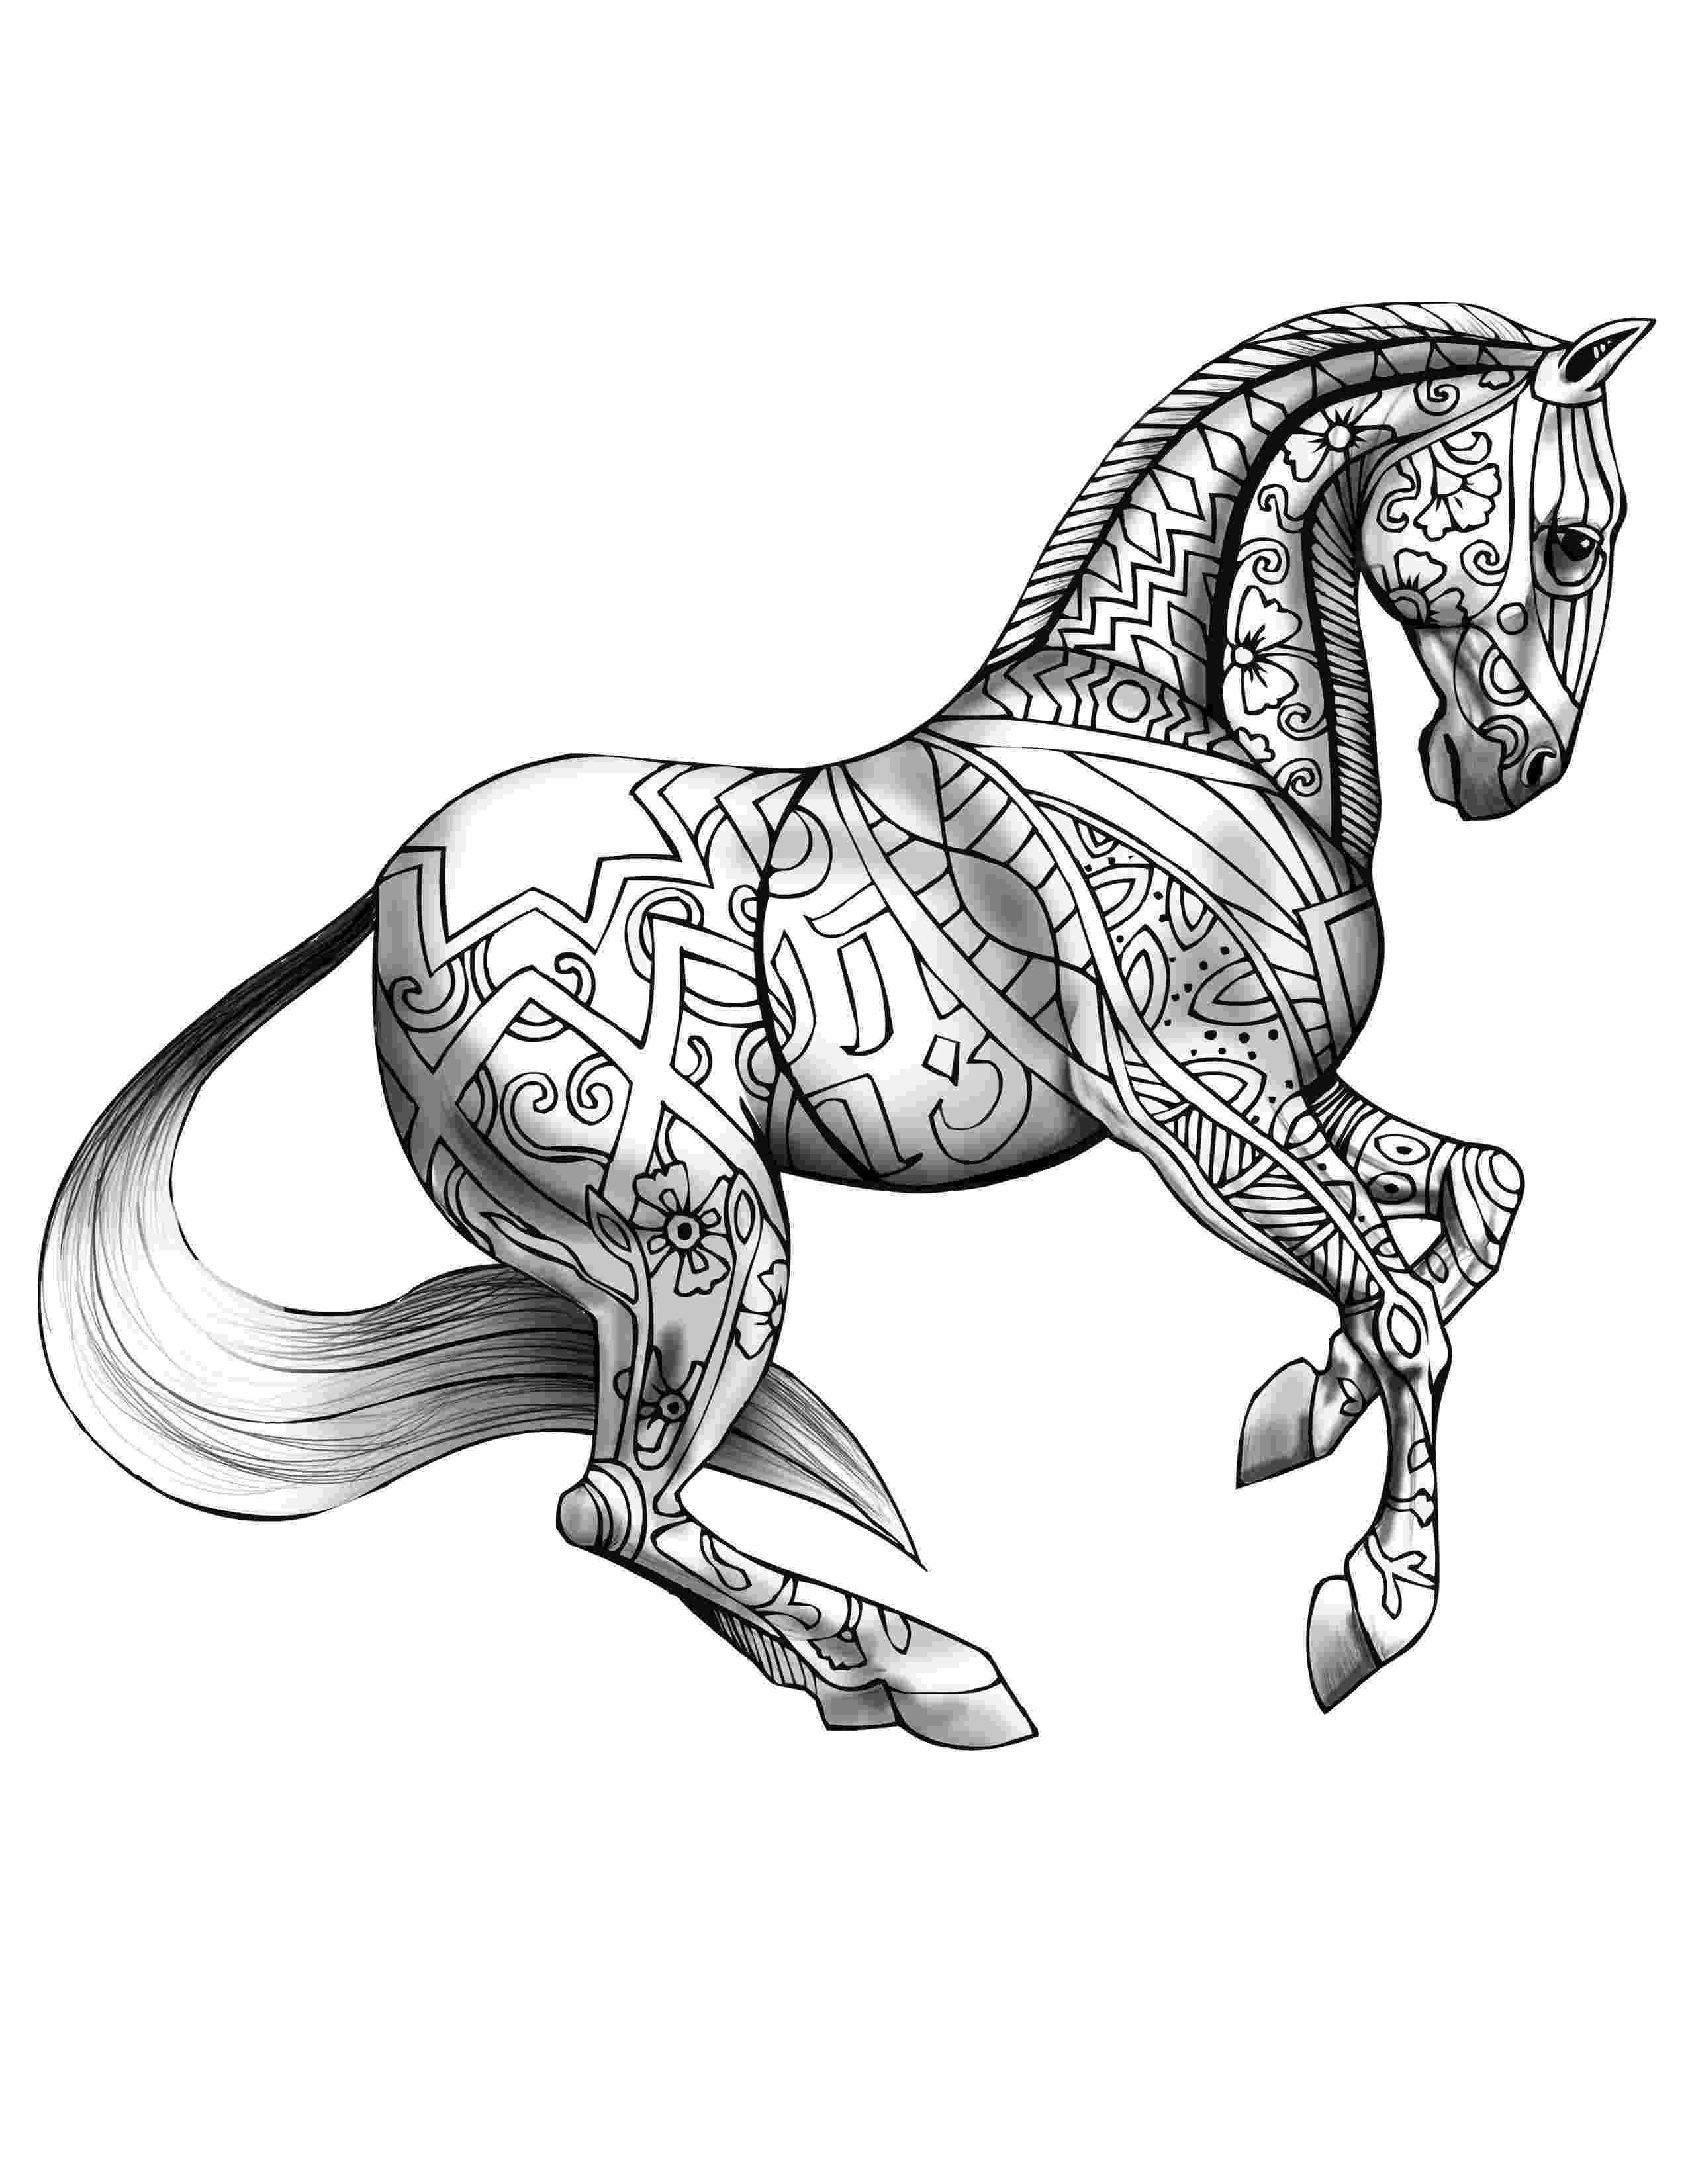 printable horse coloring pages for adults free book horse horses adult coloring pages printable pages for coloring adults horse